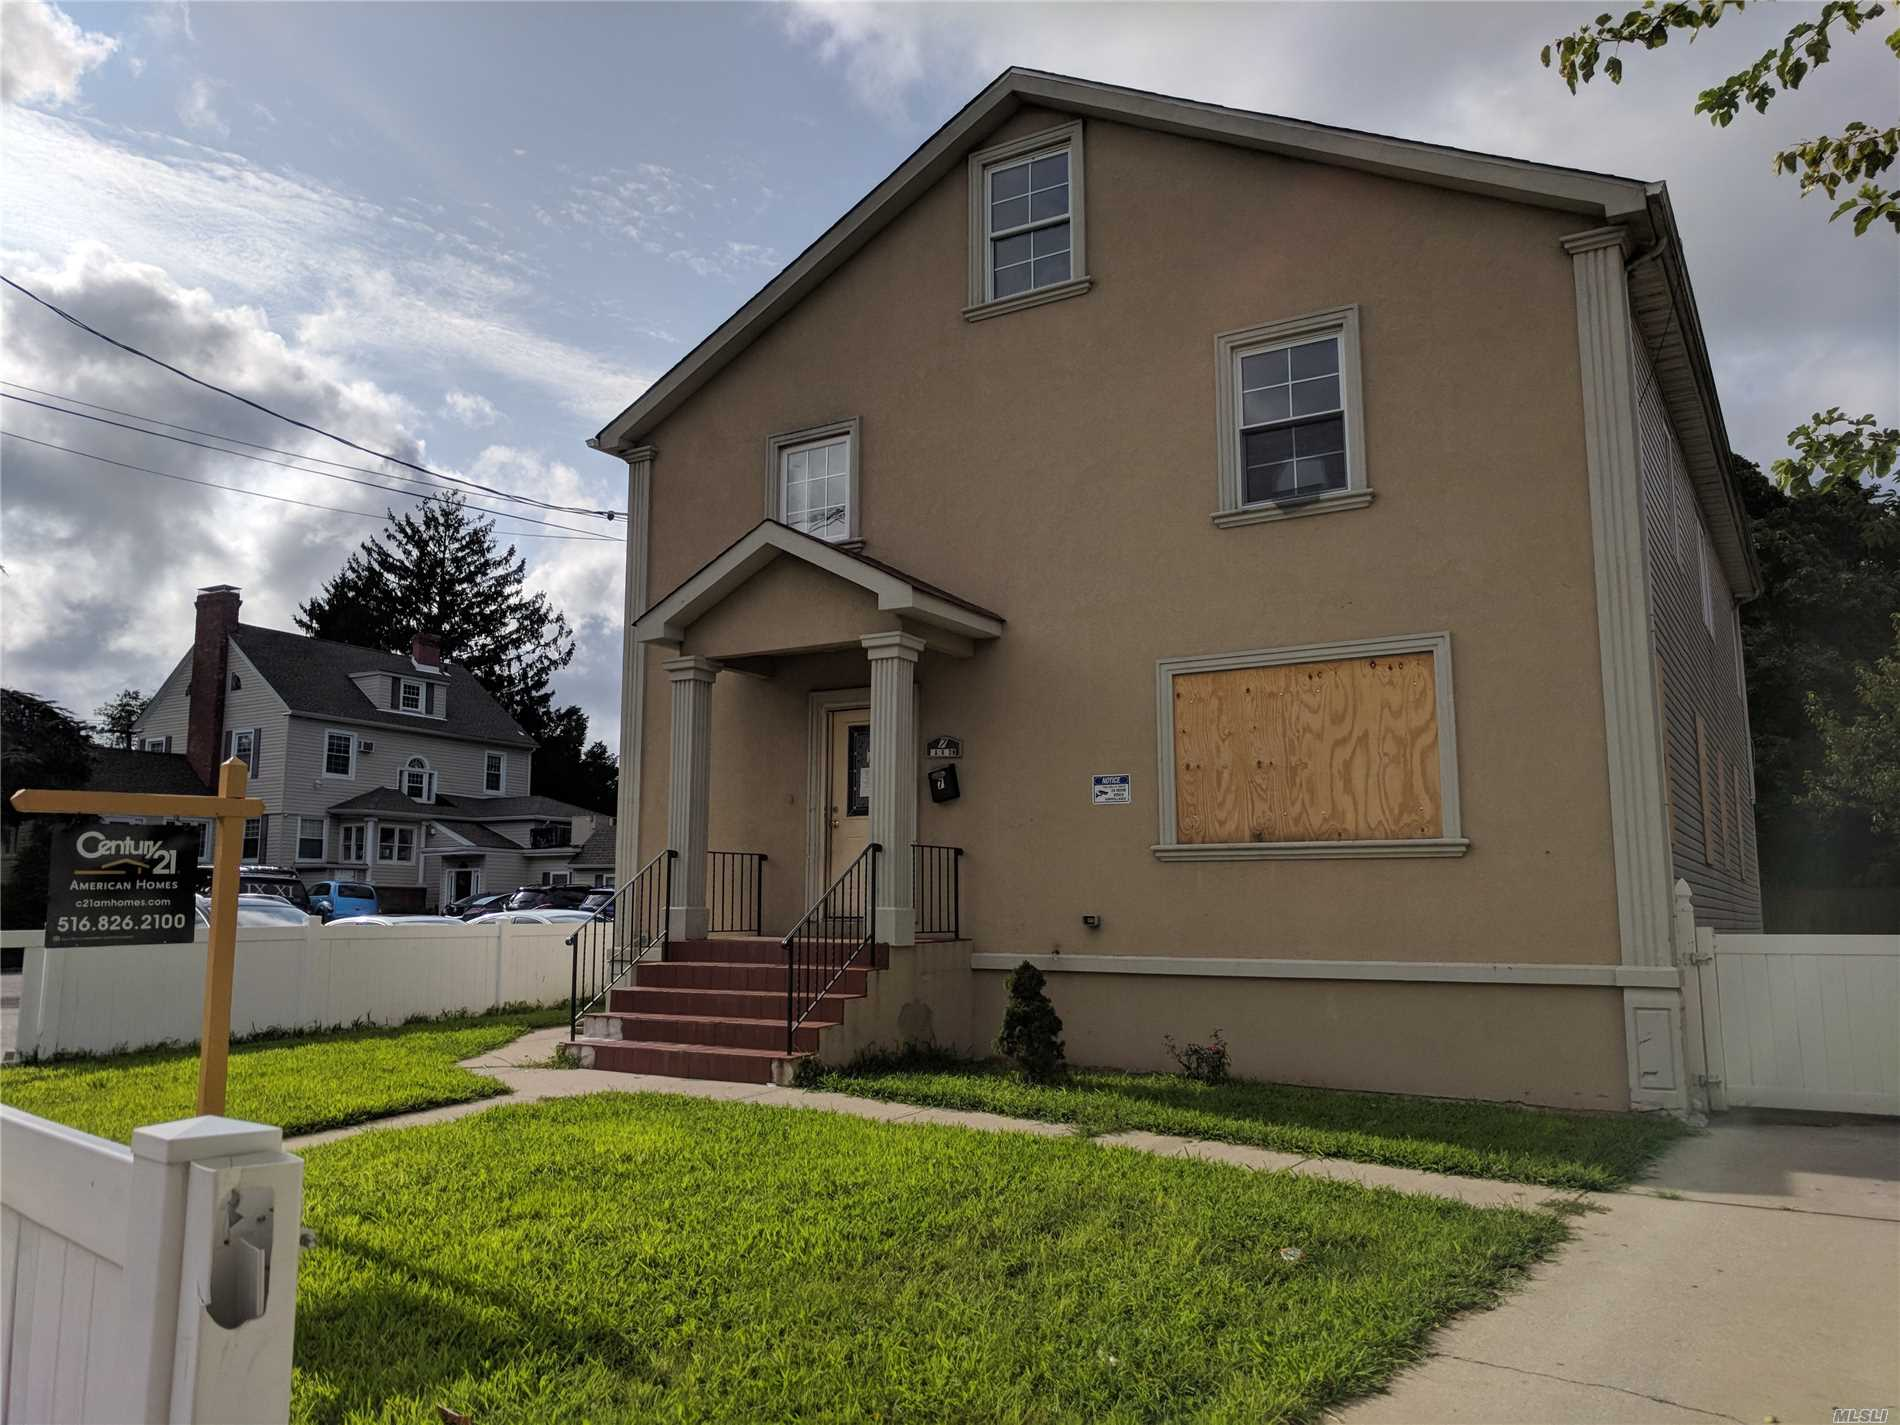 Large & Young Stucco Colonial Right On The Edge Of The Heart Of Hempstead. Everything Is Right At Your Doorstep! Wood Floors, Full Basement, Nice Yard, Lot Of Positive Qualities. Just Needs Some Tlc To Bring It Back To Life!